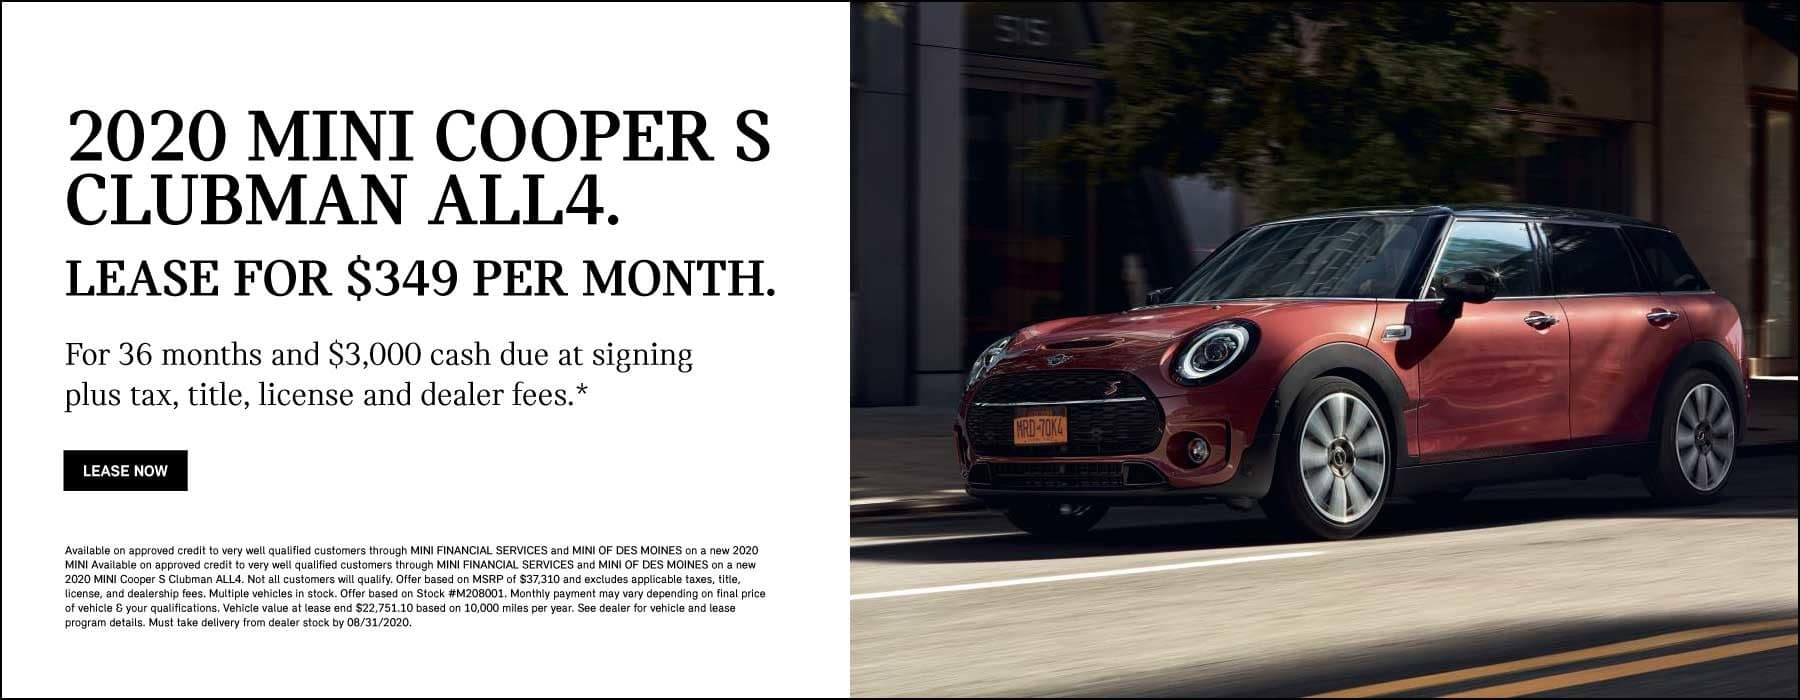 2020 MINI Cooper S Clubman ALL4 $349 per month 36 months 10,000 miles per year $3,000 due at signing plus tax, title, license and dealer fees.